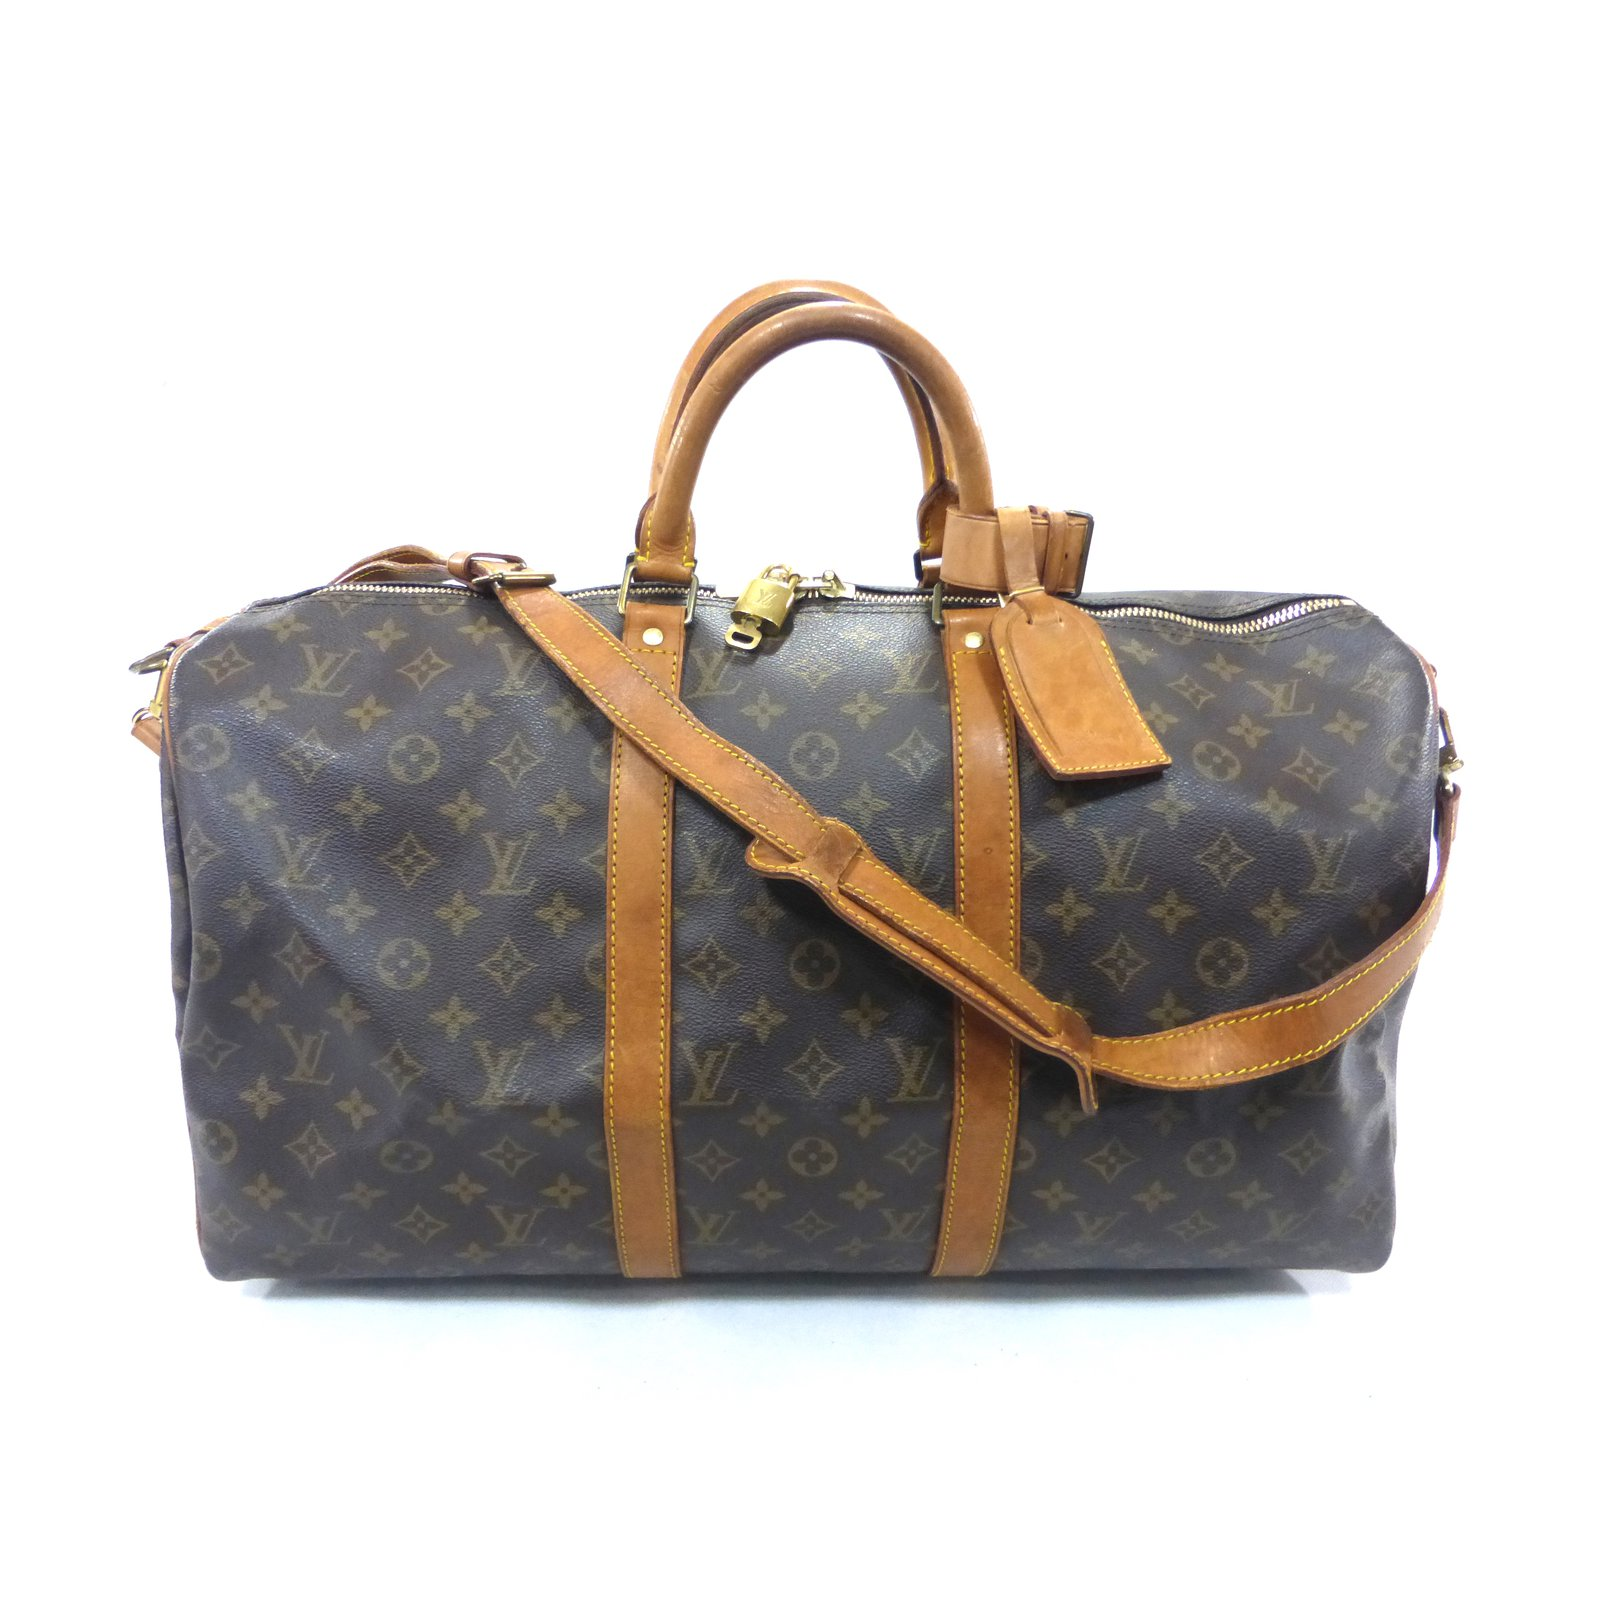 370aae22093d Louis Vuitton Keepall 50 bandouliere monogram Travel bag Leather Brown  ref.87428